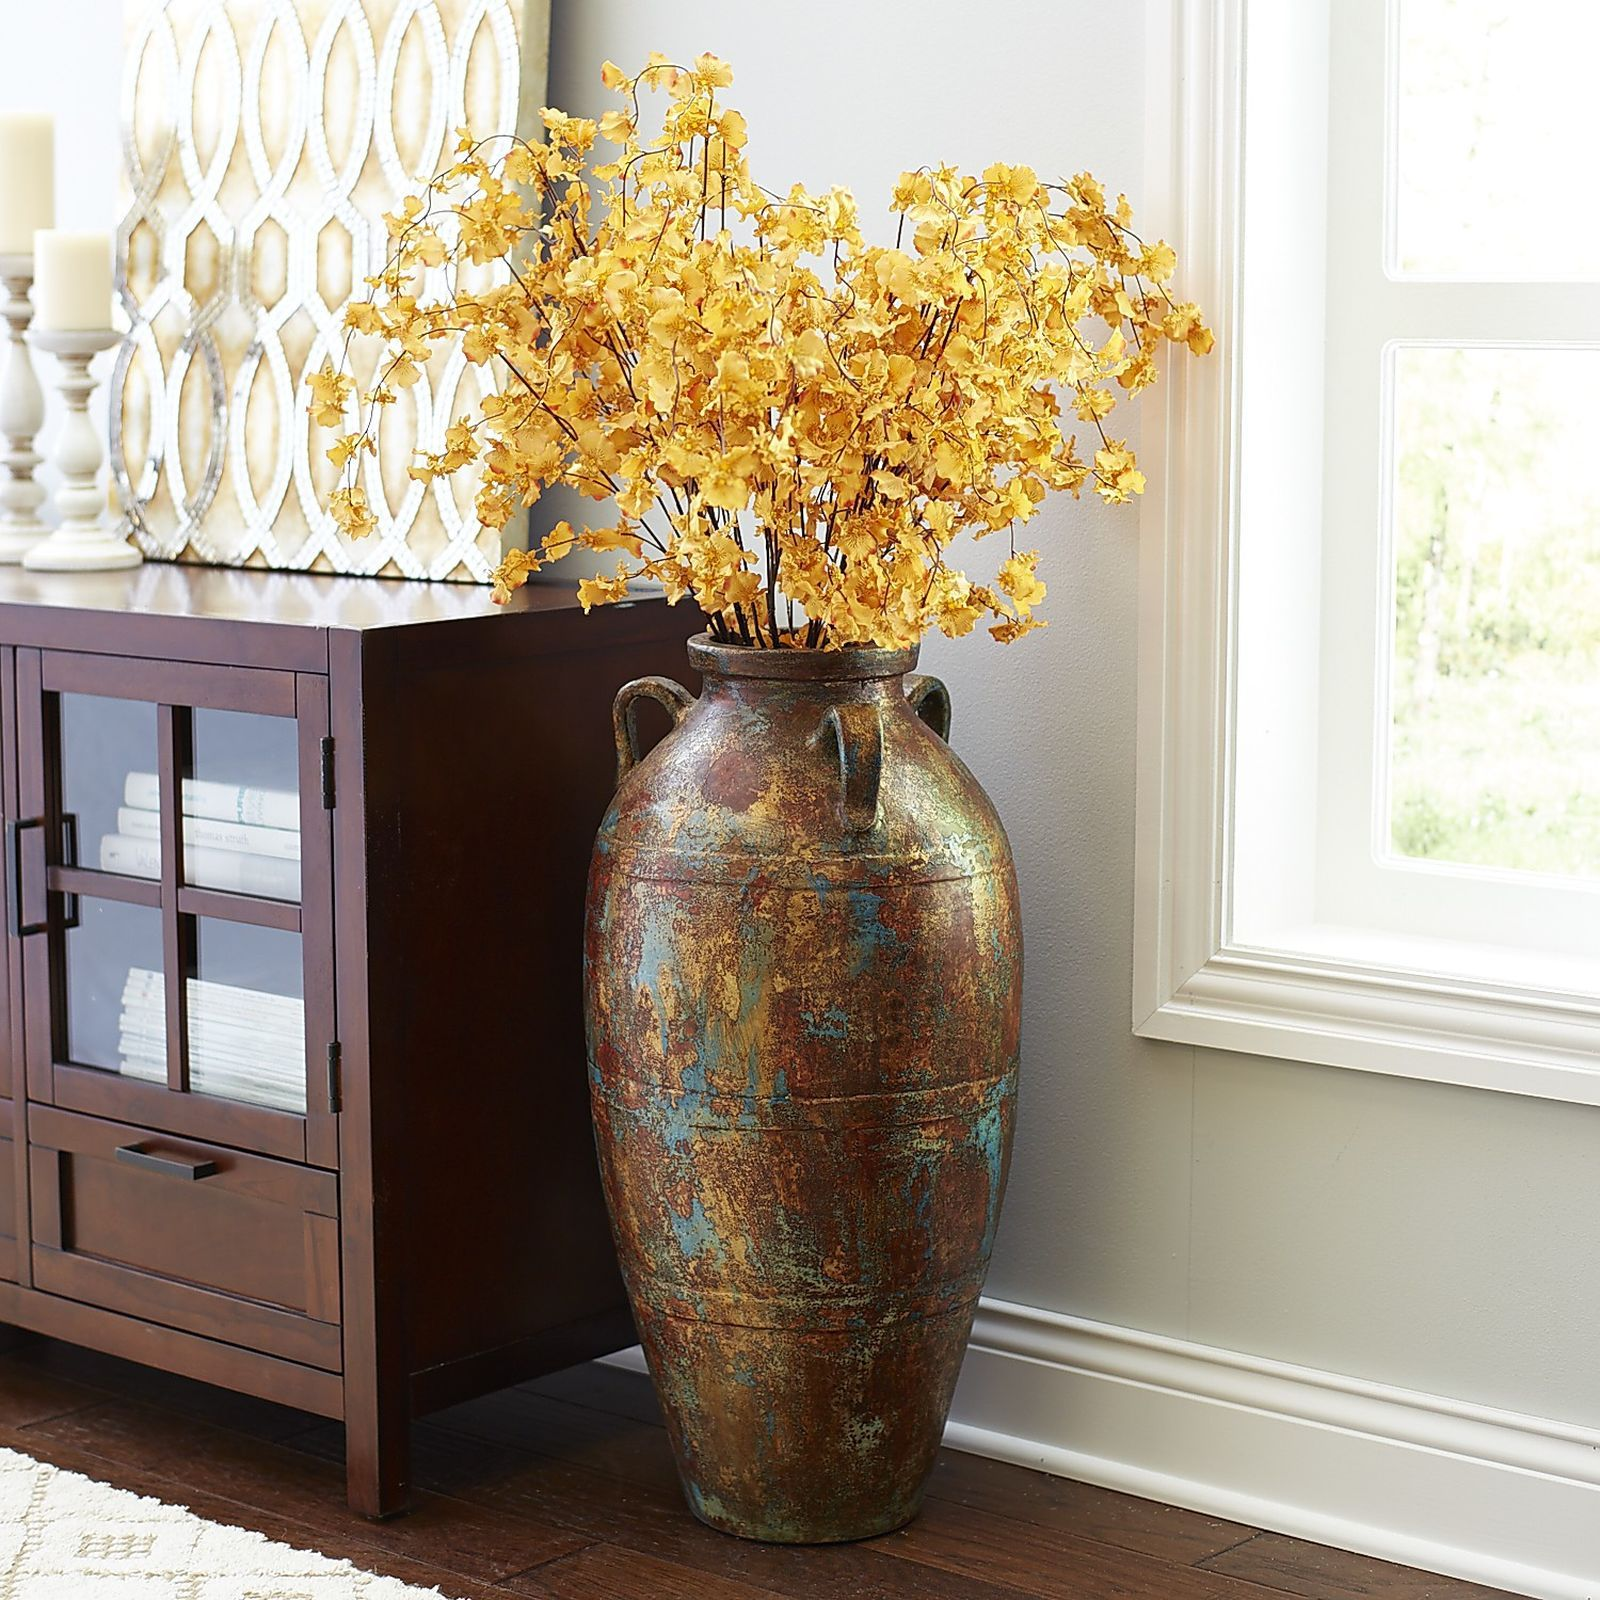 Tall Vases Home Decor Terracotta Floor Vase In 2019 Living Room Decor